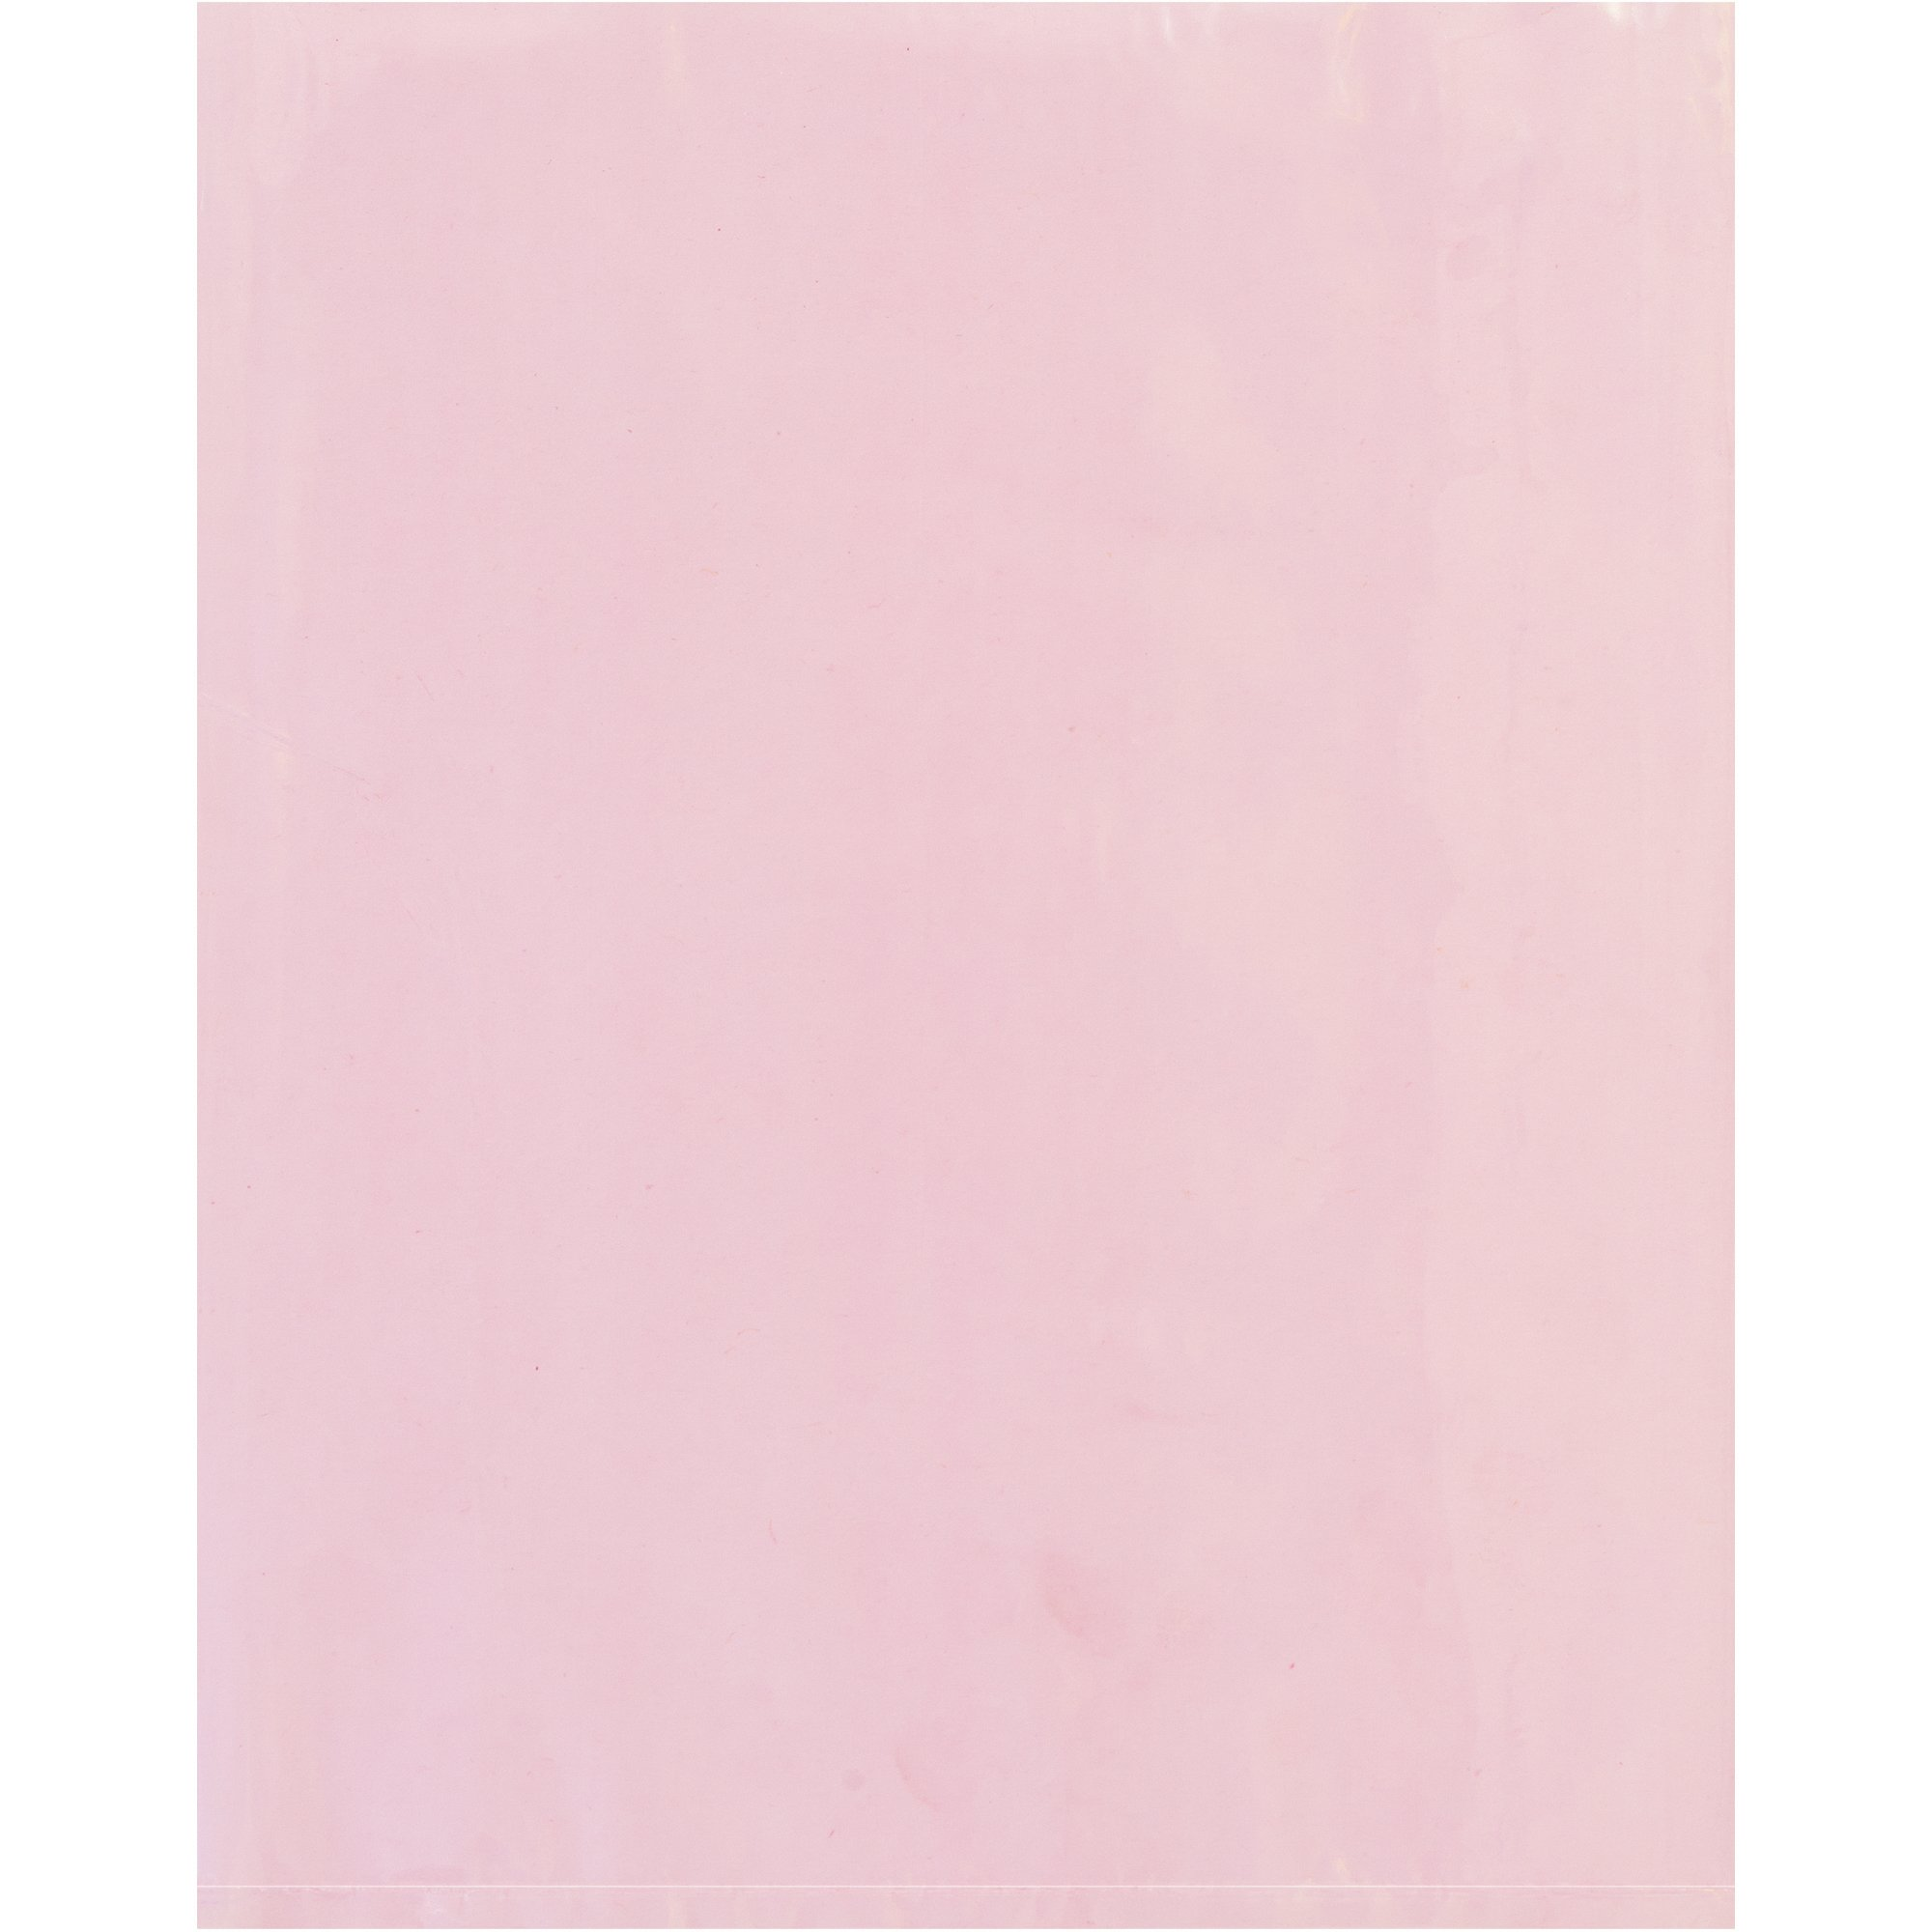 Boxes Fast BFPBAS480 Anti-Static Flat 2 Mil Poly Bags, 9'' x 12'', Pink (Pack of 1000)